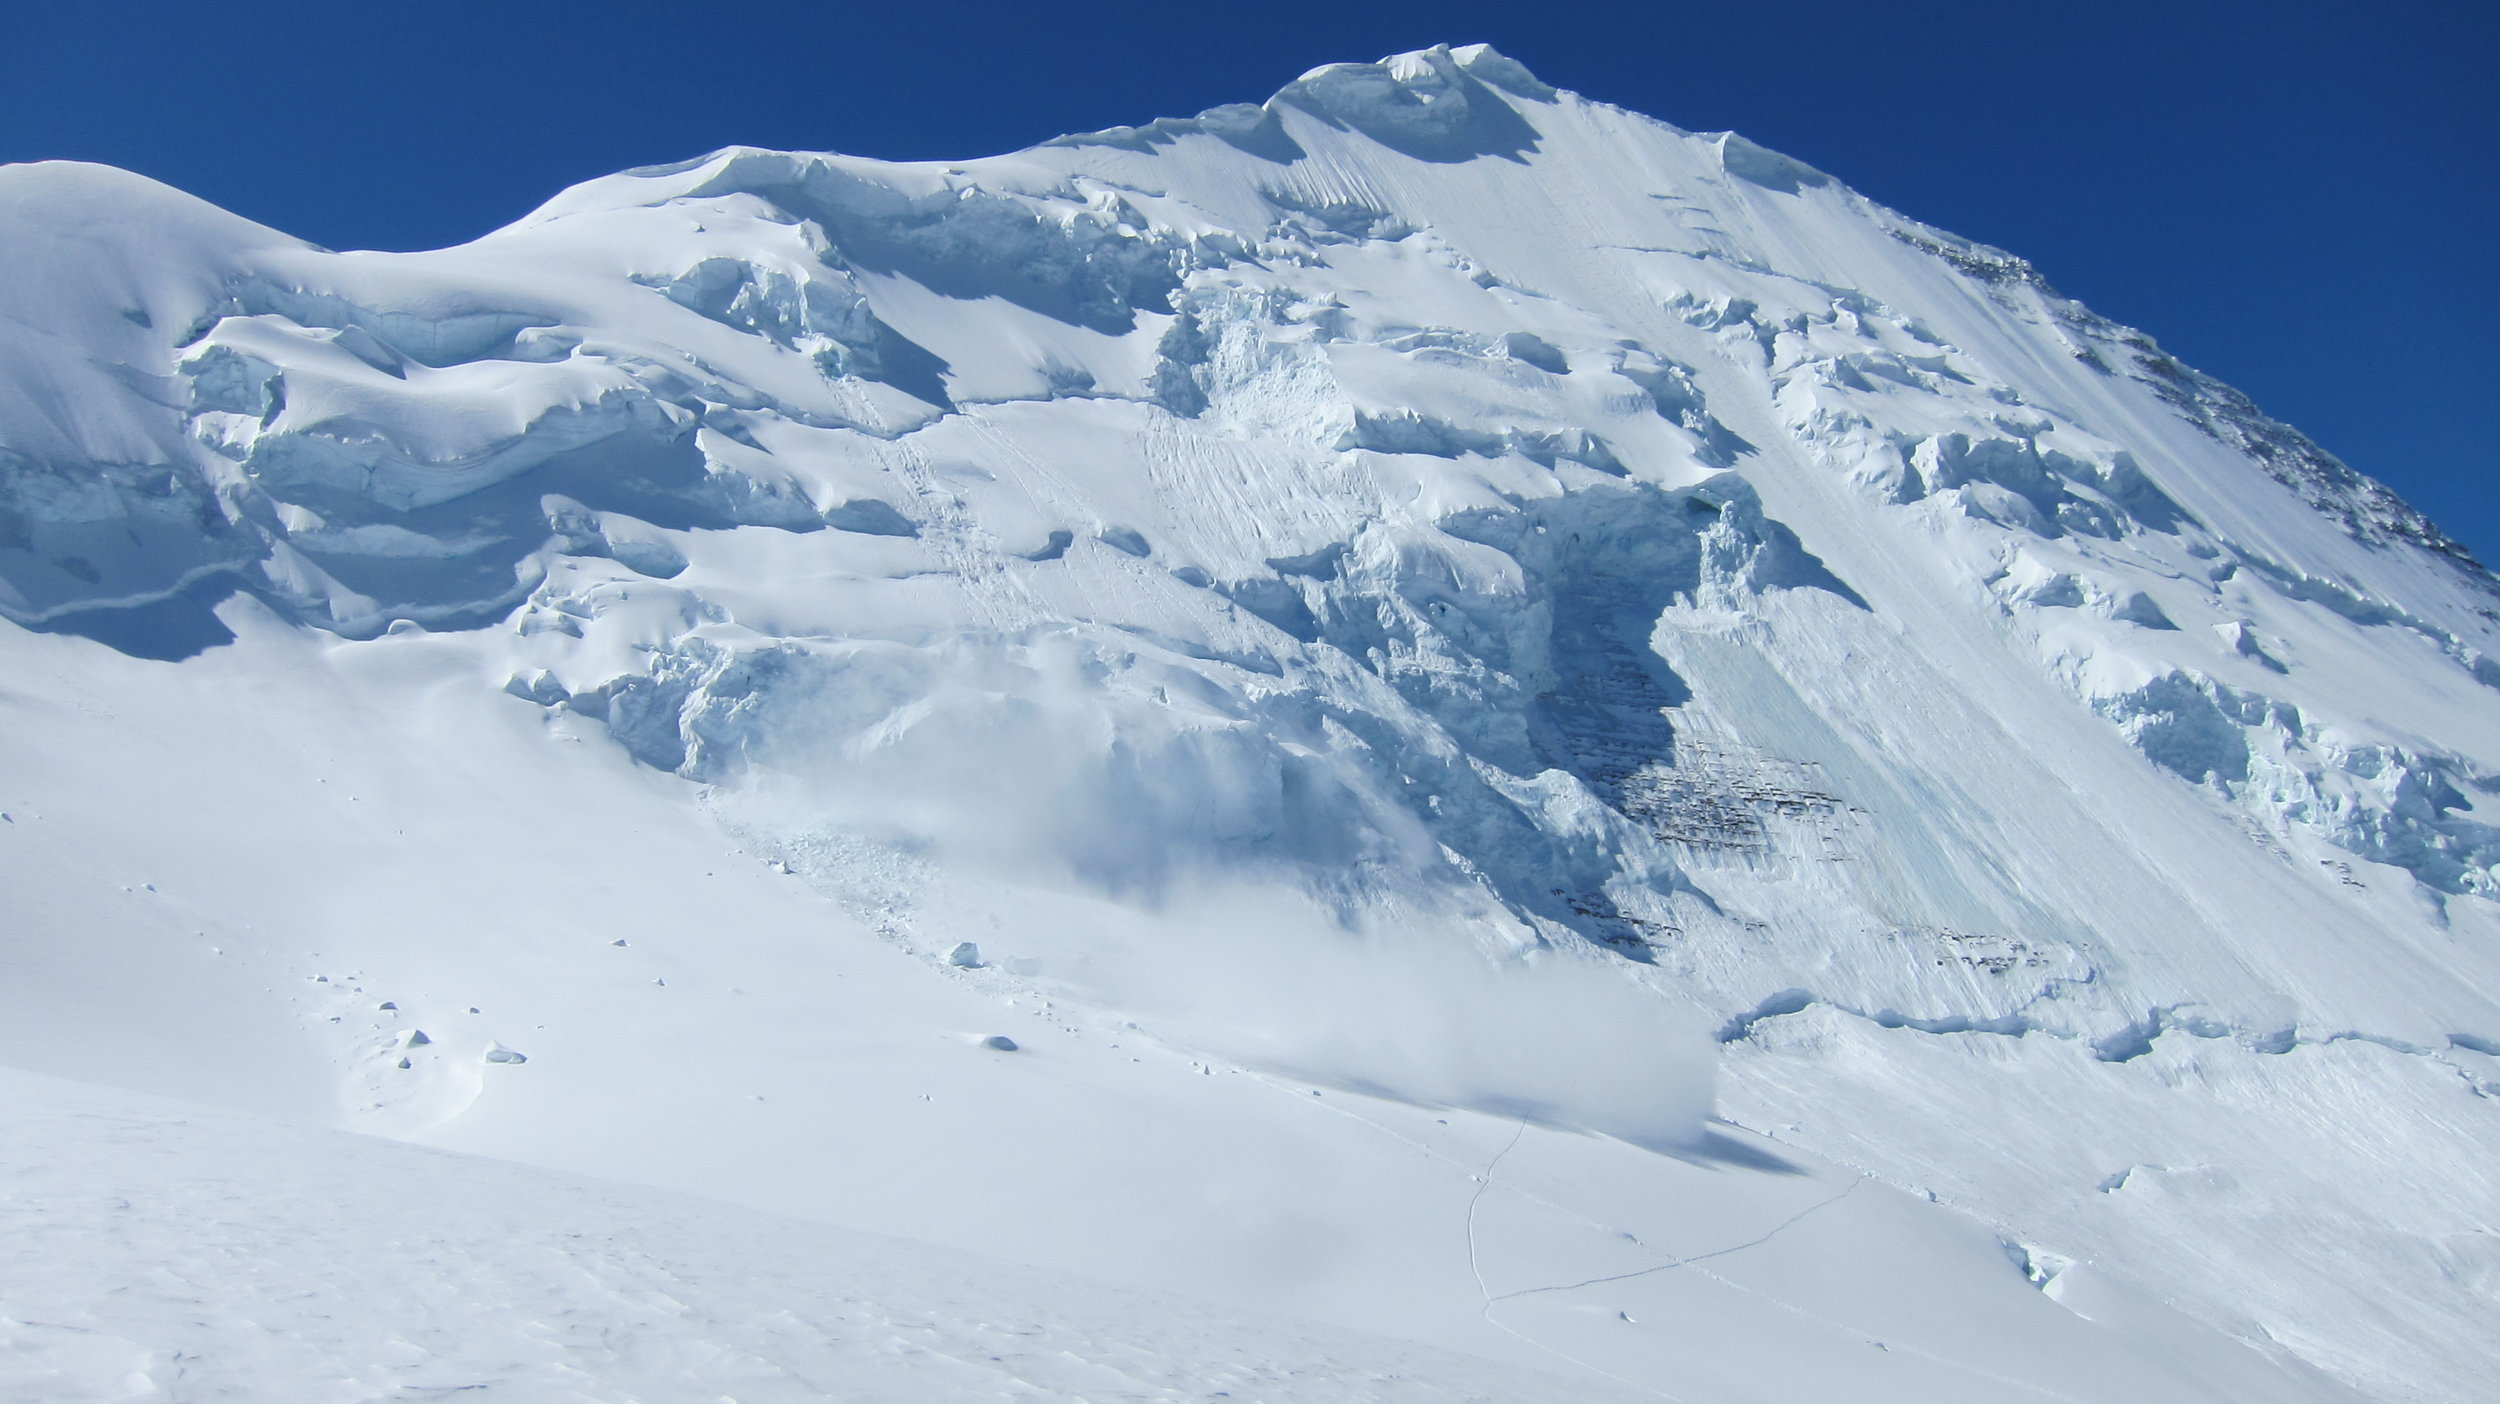 A serac avalanche dusting the traverse.